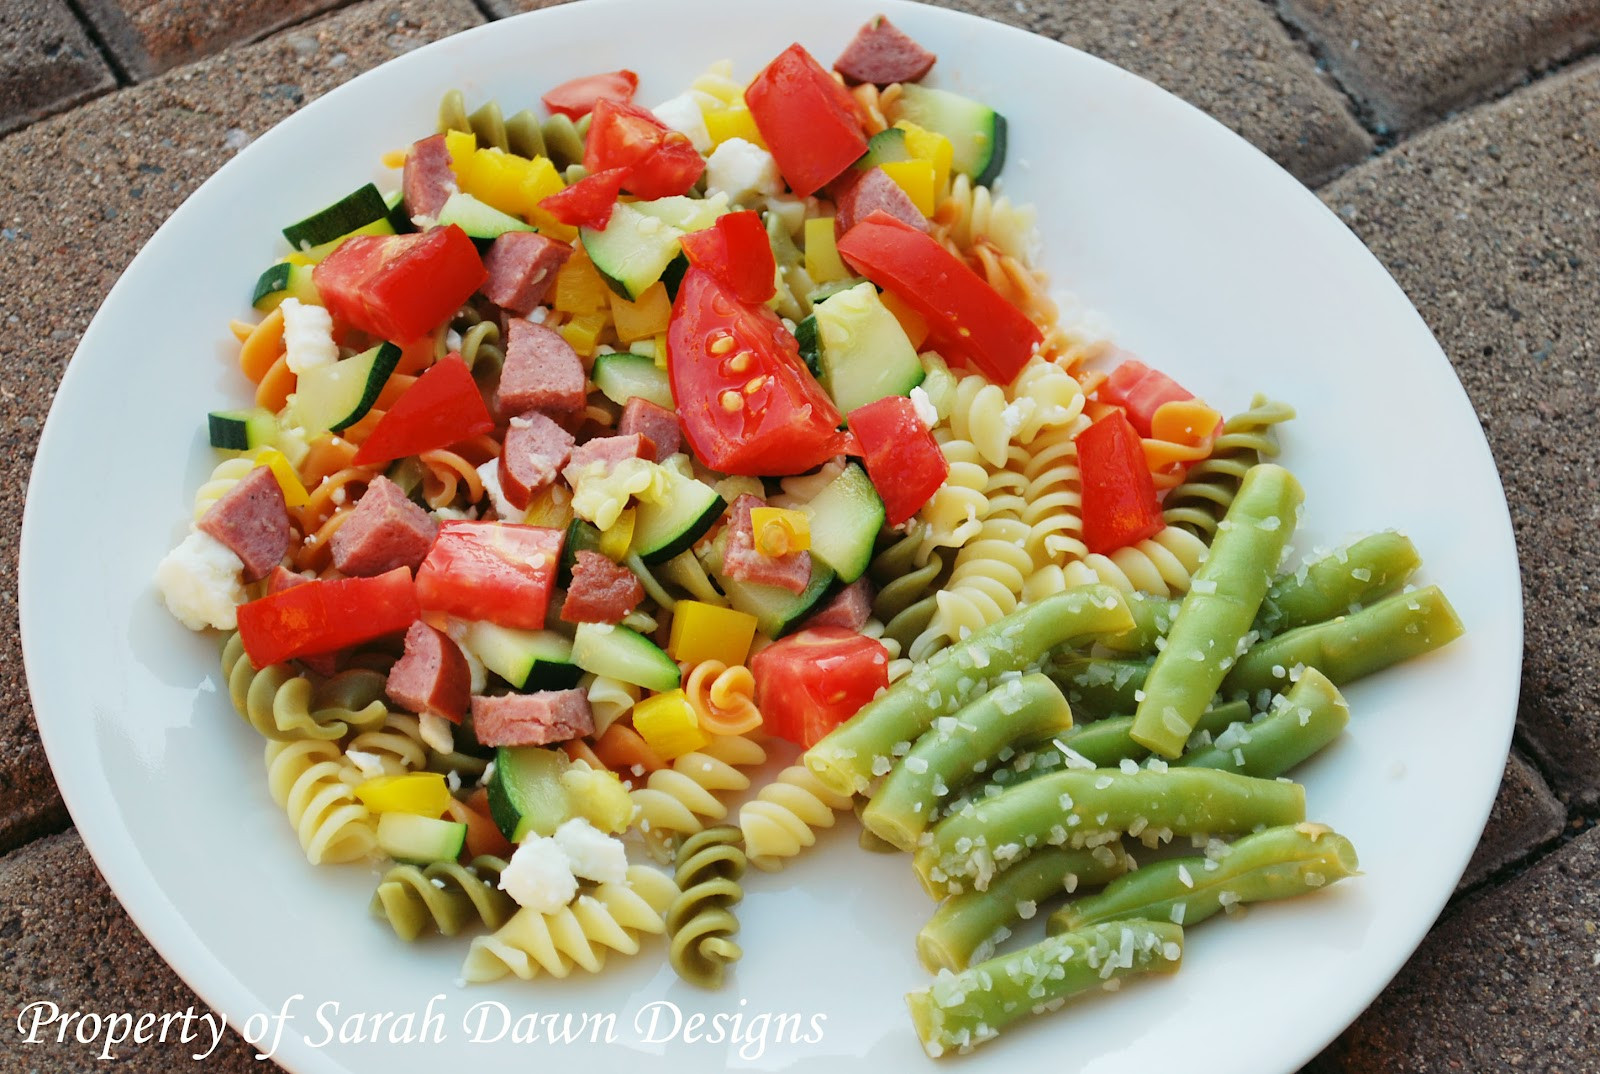 Light and Healthy Dinners the 20 Best Ideas for Sarah Dawn Designs 20 Minute Meals Light and Healthy Pasta